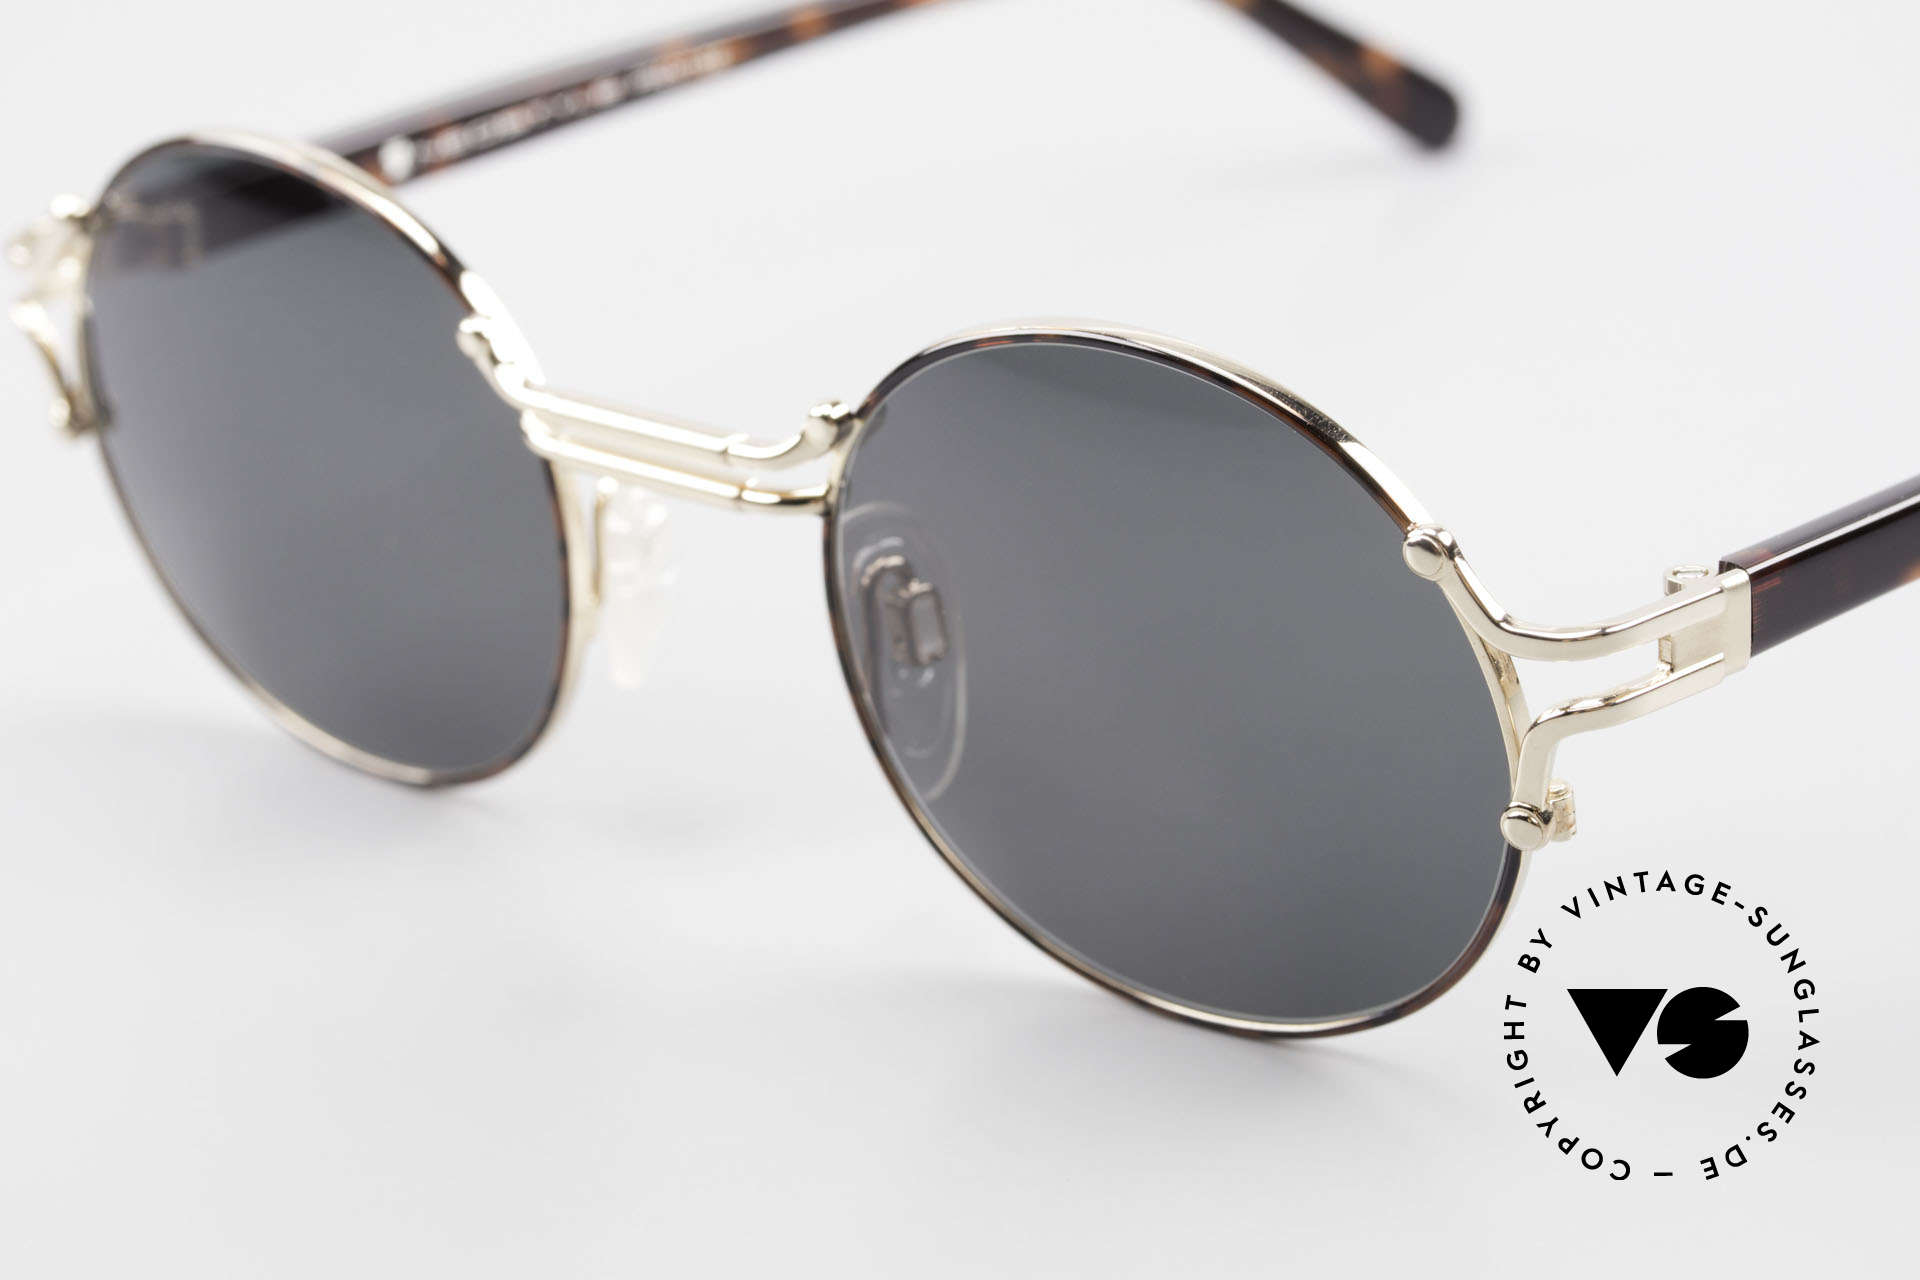 Neostyle Academic 8 Round Vintage Sunglasses 80's, elegant frame coloring and with orig. packing, Made for Men and Women